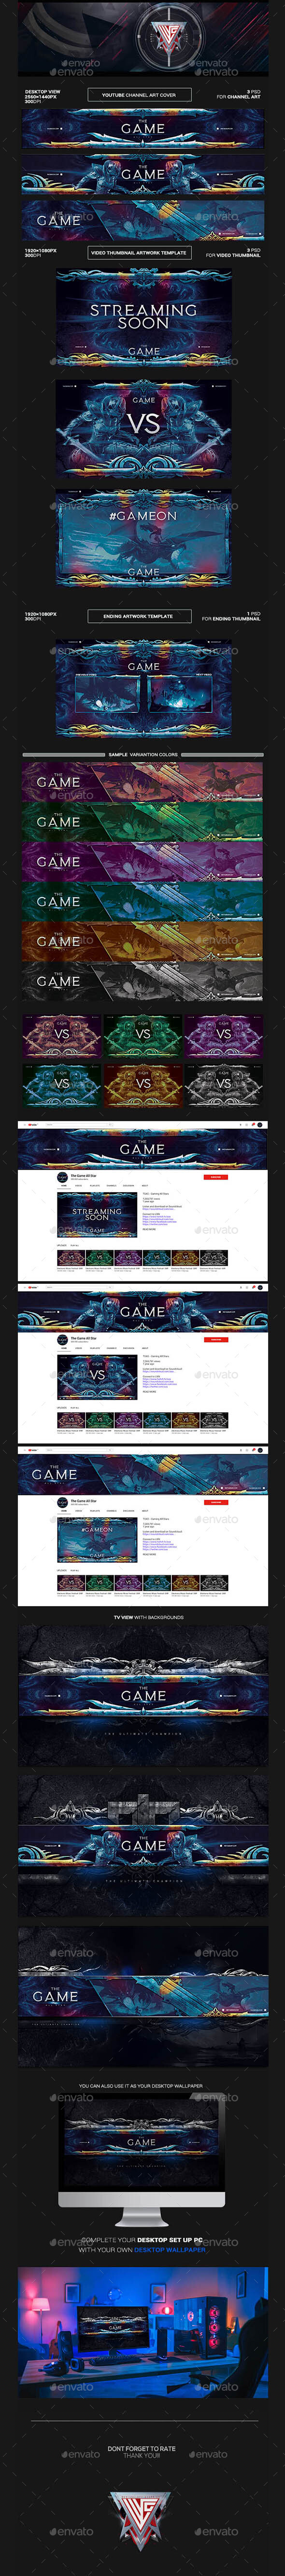 The Game All Star Gaming Live Steam Youtube Channel Art/Video Thumbnail and Ending Video Template